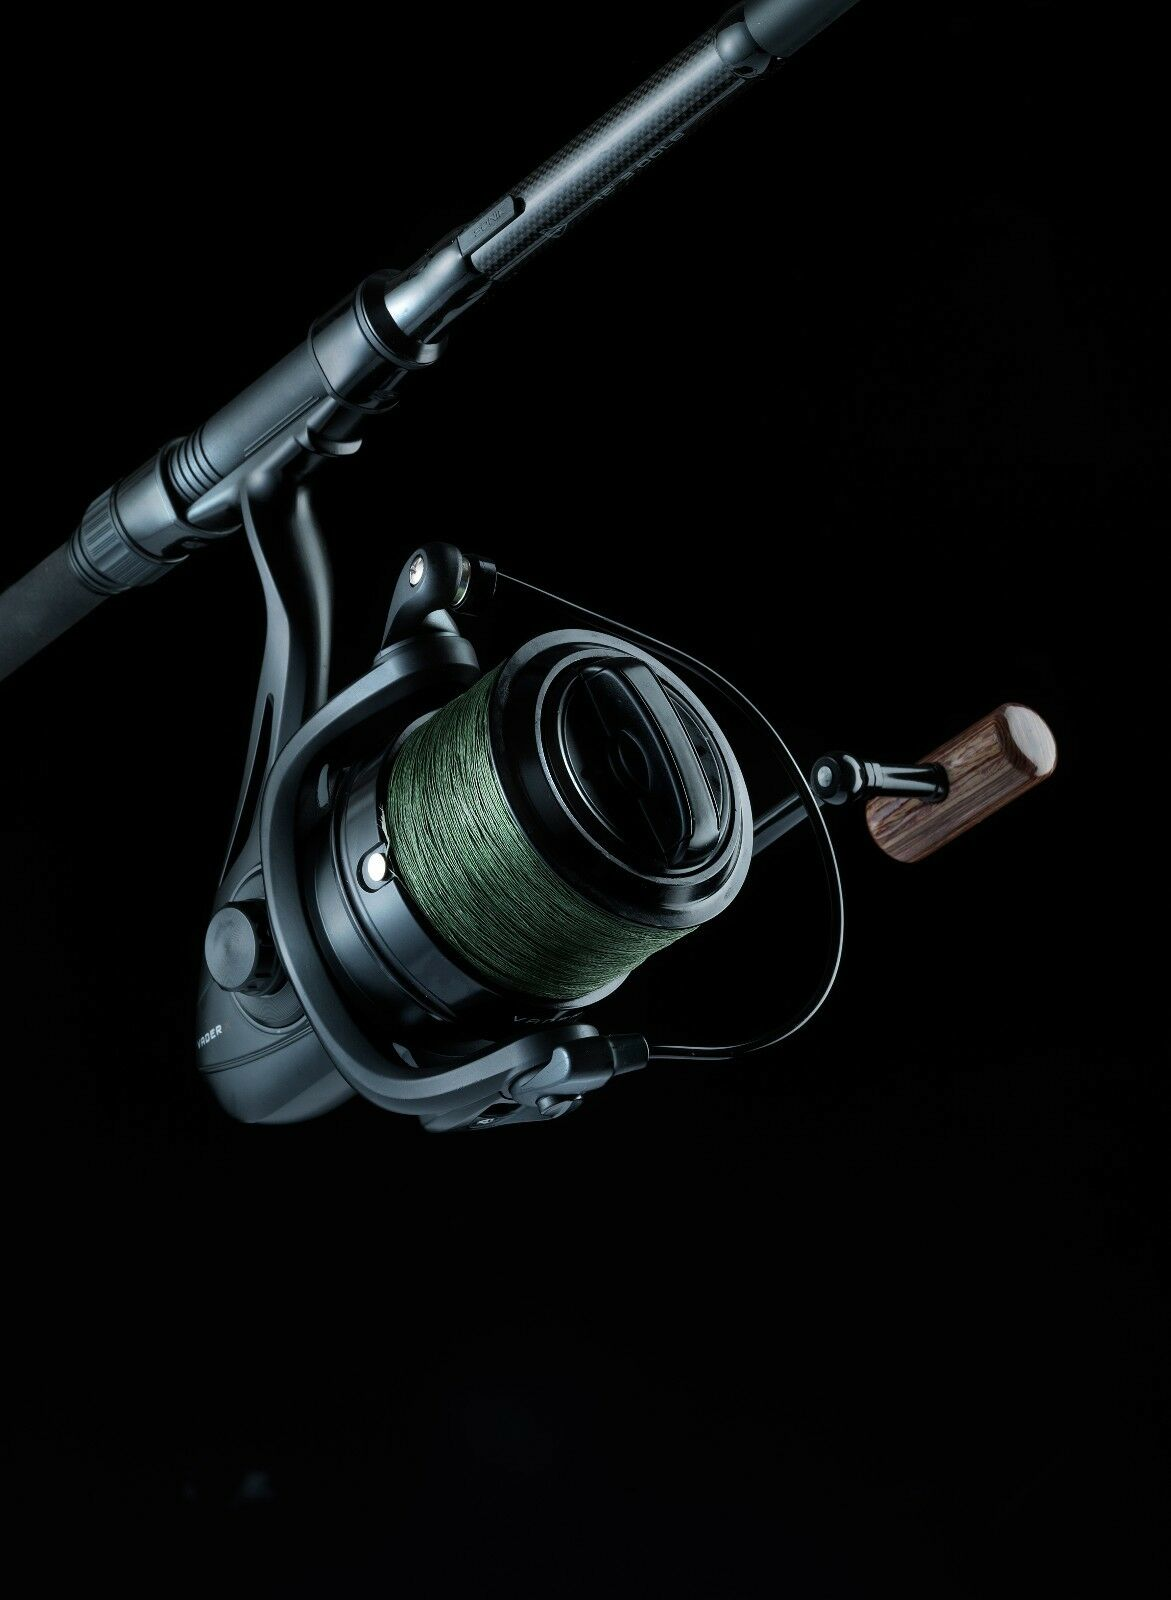 SONIK VADER X 8000 SPOD/MARKER REEL PRELOADED WITH 200M 30LB BRAID